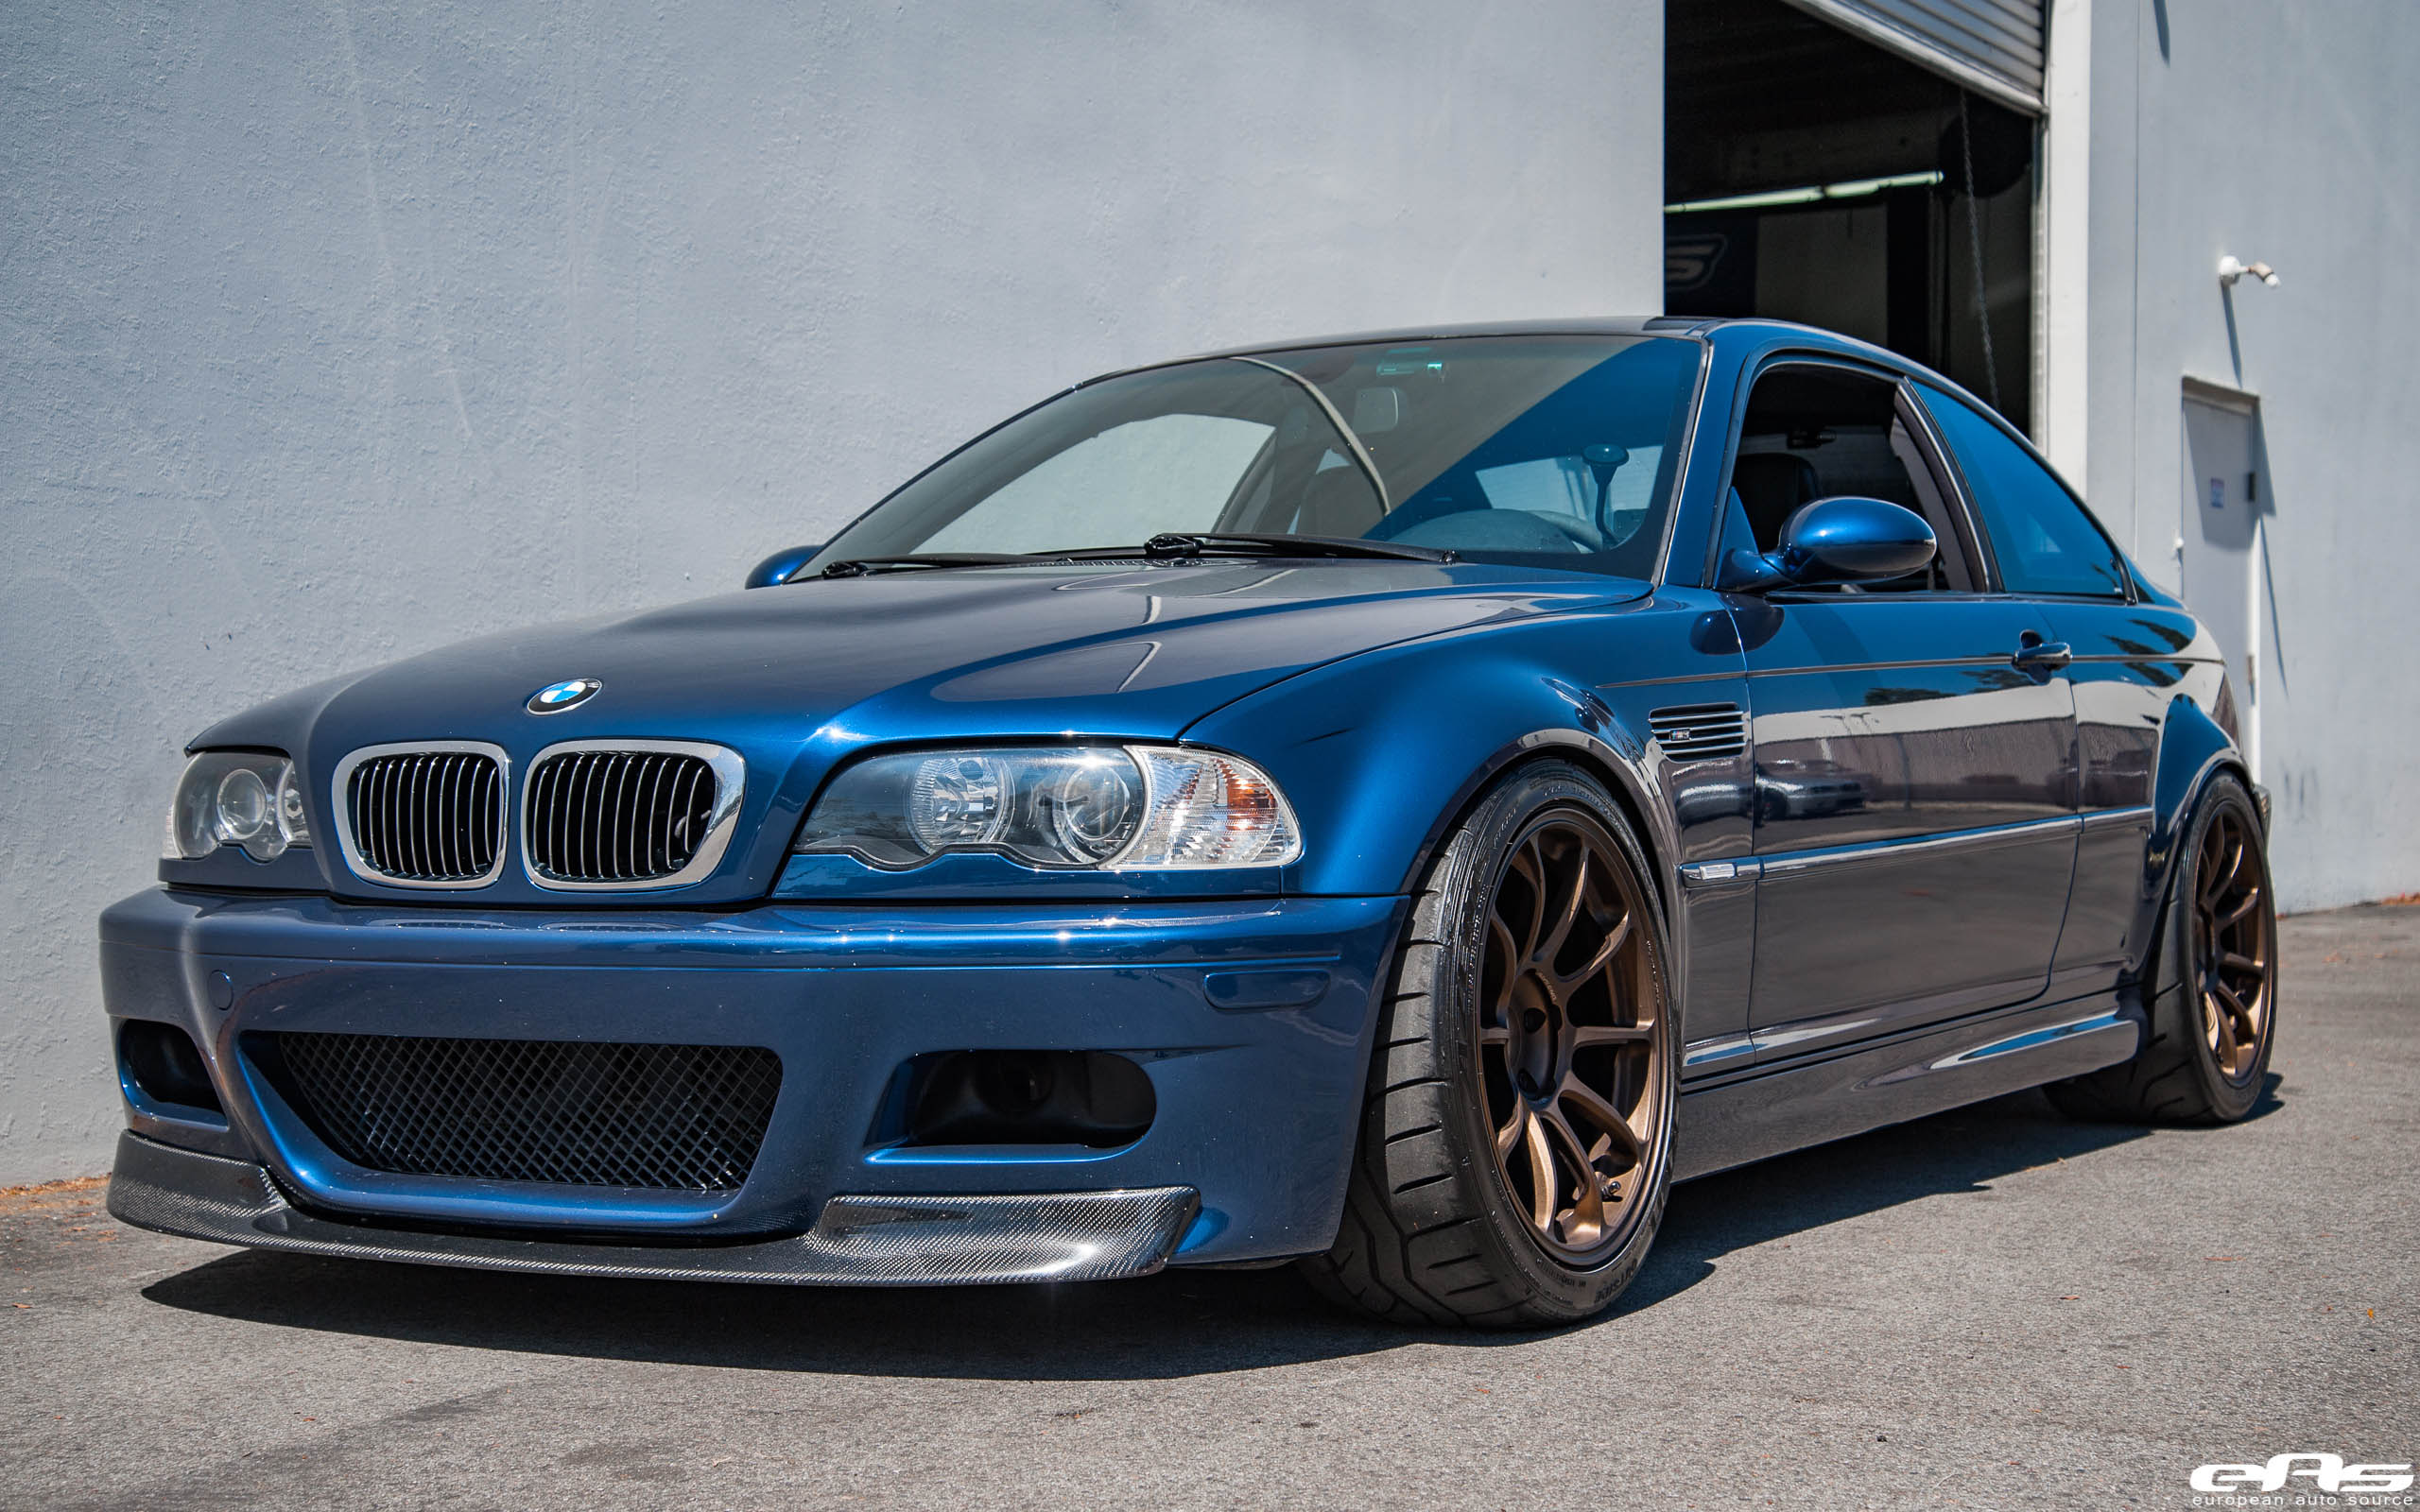 A Mystic Blue Bmw E46 M3 Gets Aftermarket Goodies At European Auto Source